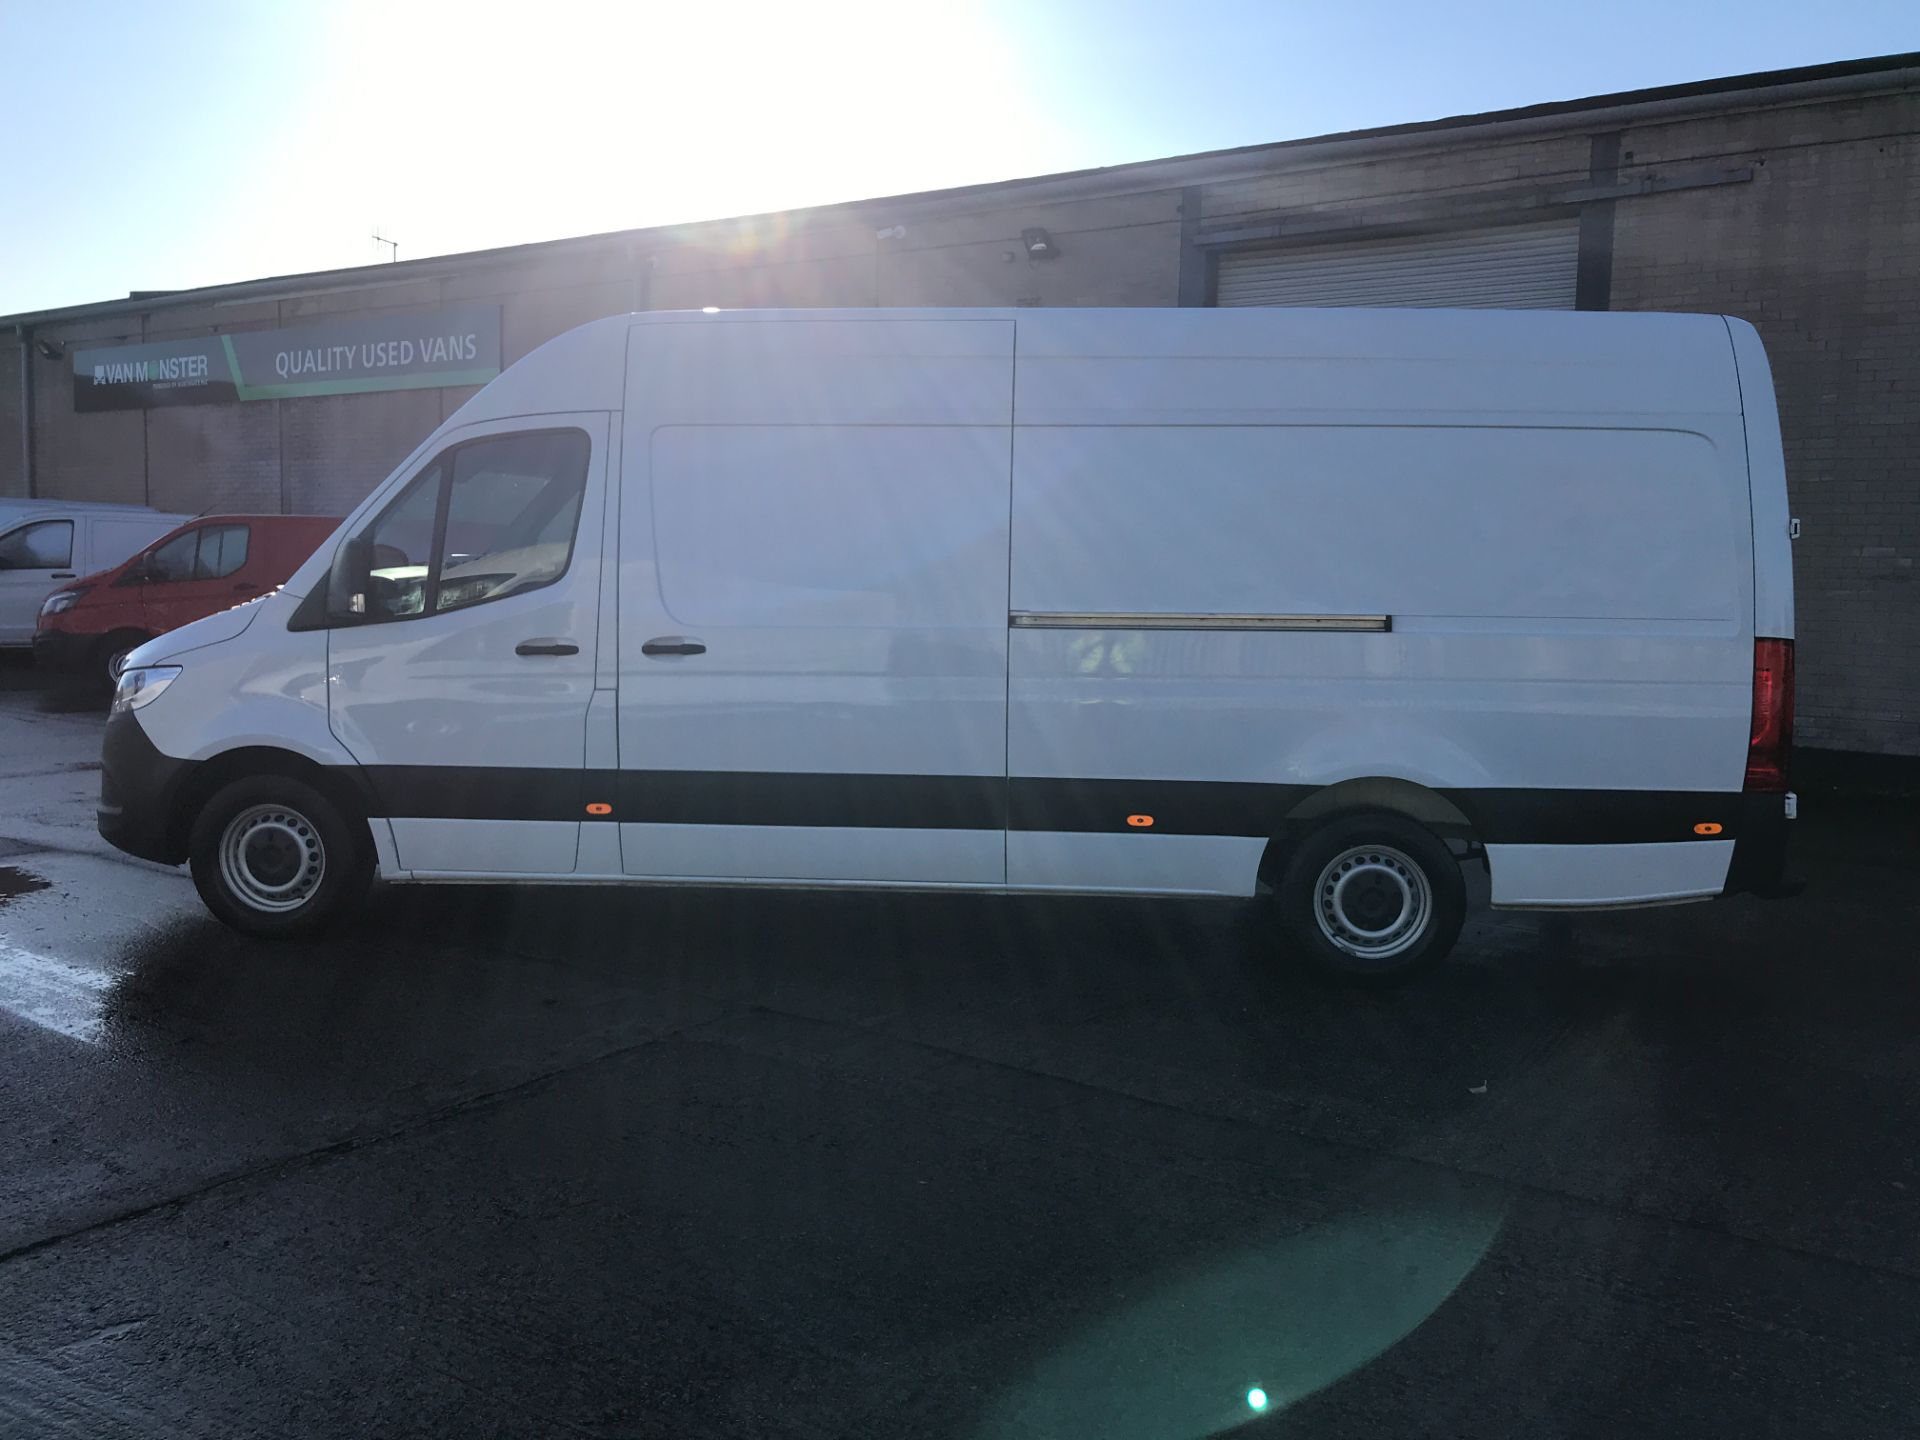 2018 Mercedes-Benz Sprinter 314CDI L3 H2 140PS EURO 6 (KJ18HPL) Thumbnail 11